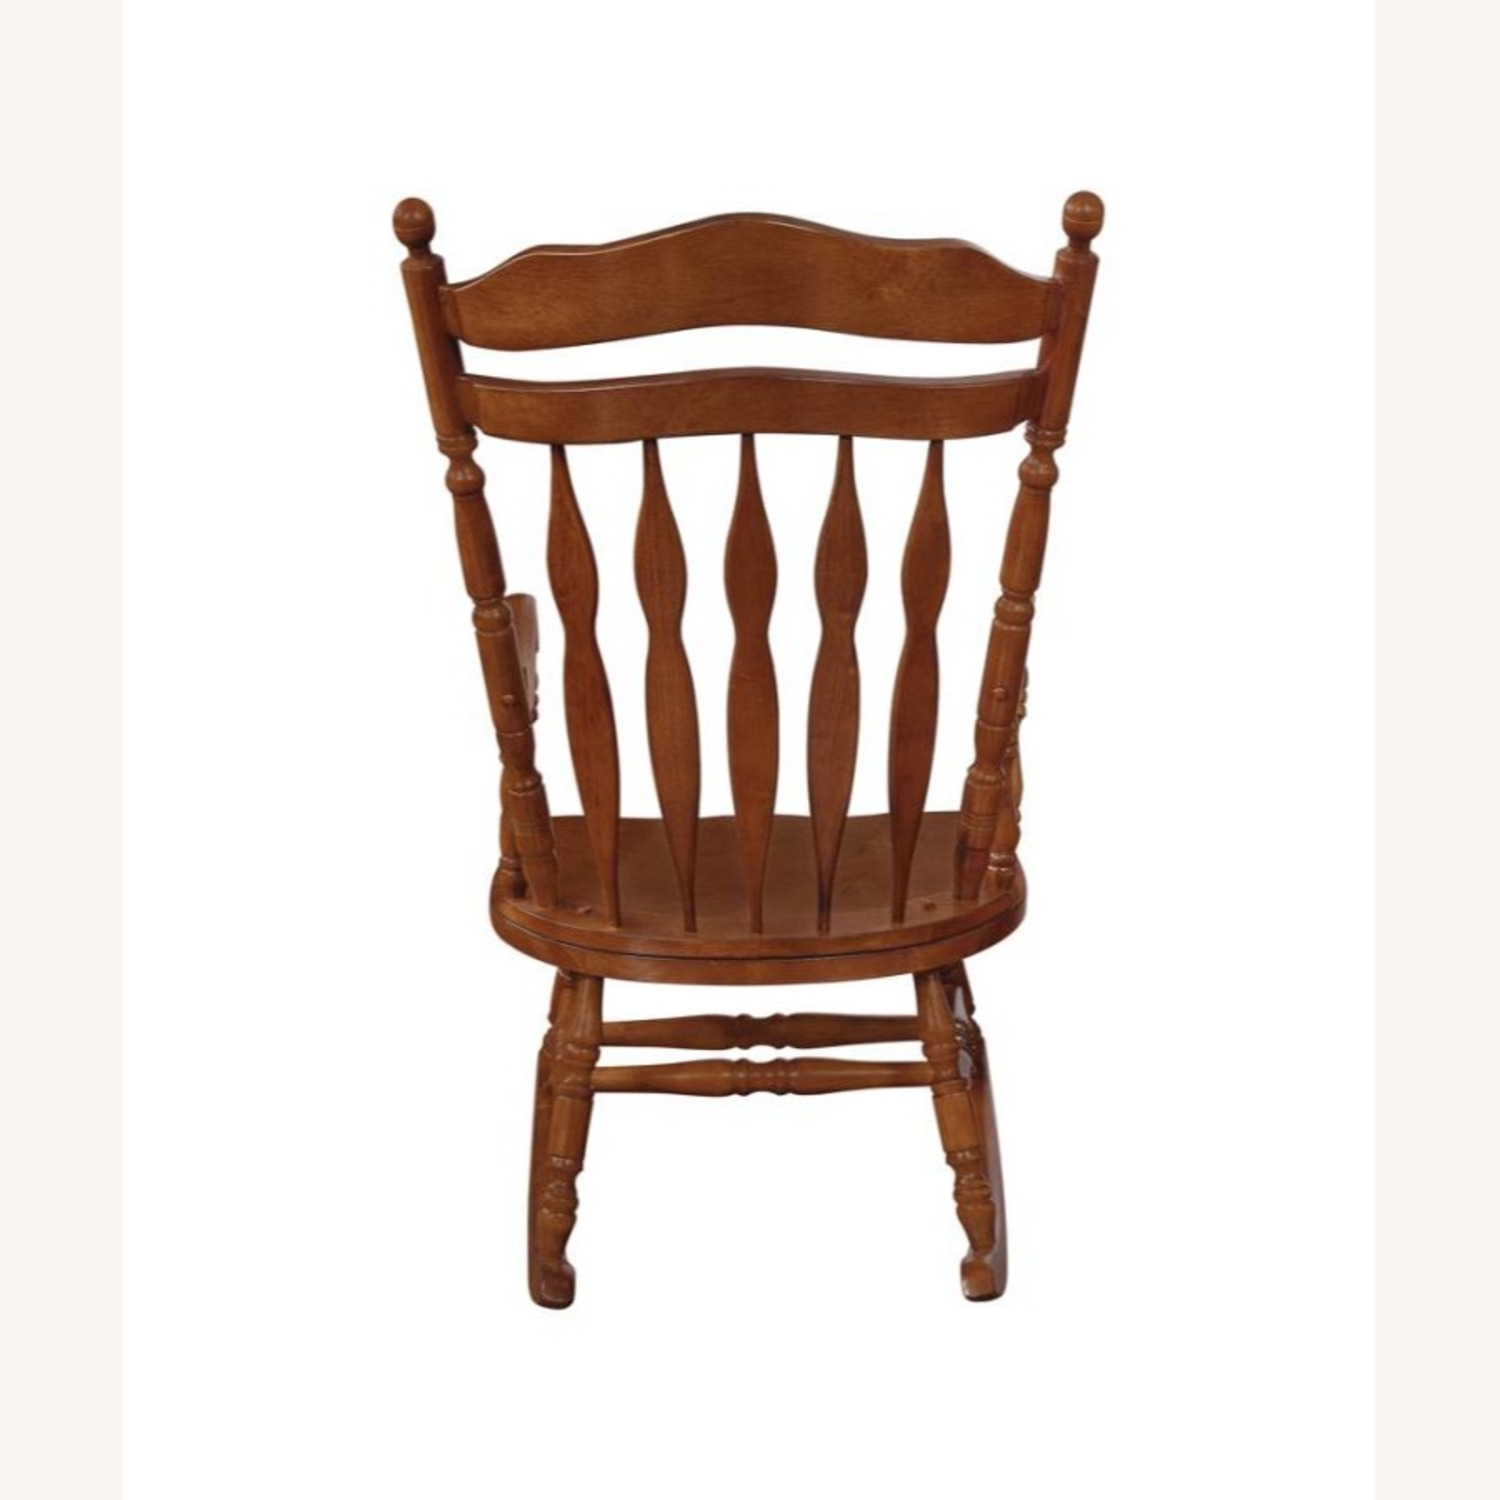 Windor Style Rocking Chair In Medium Brown Finish - image-2